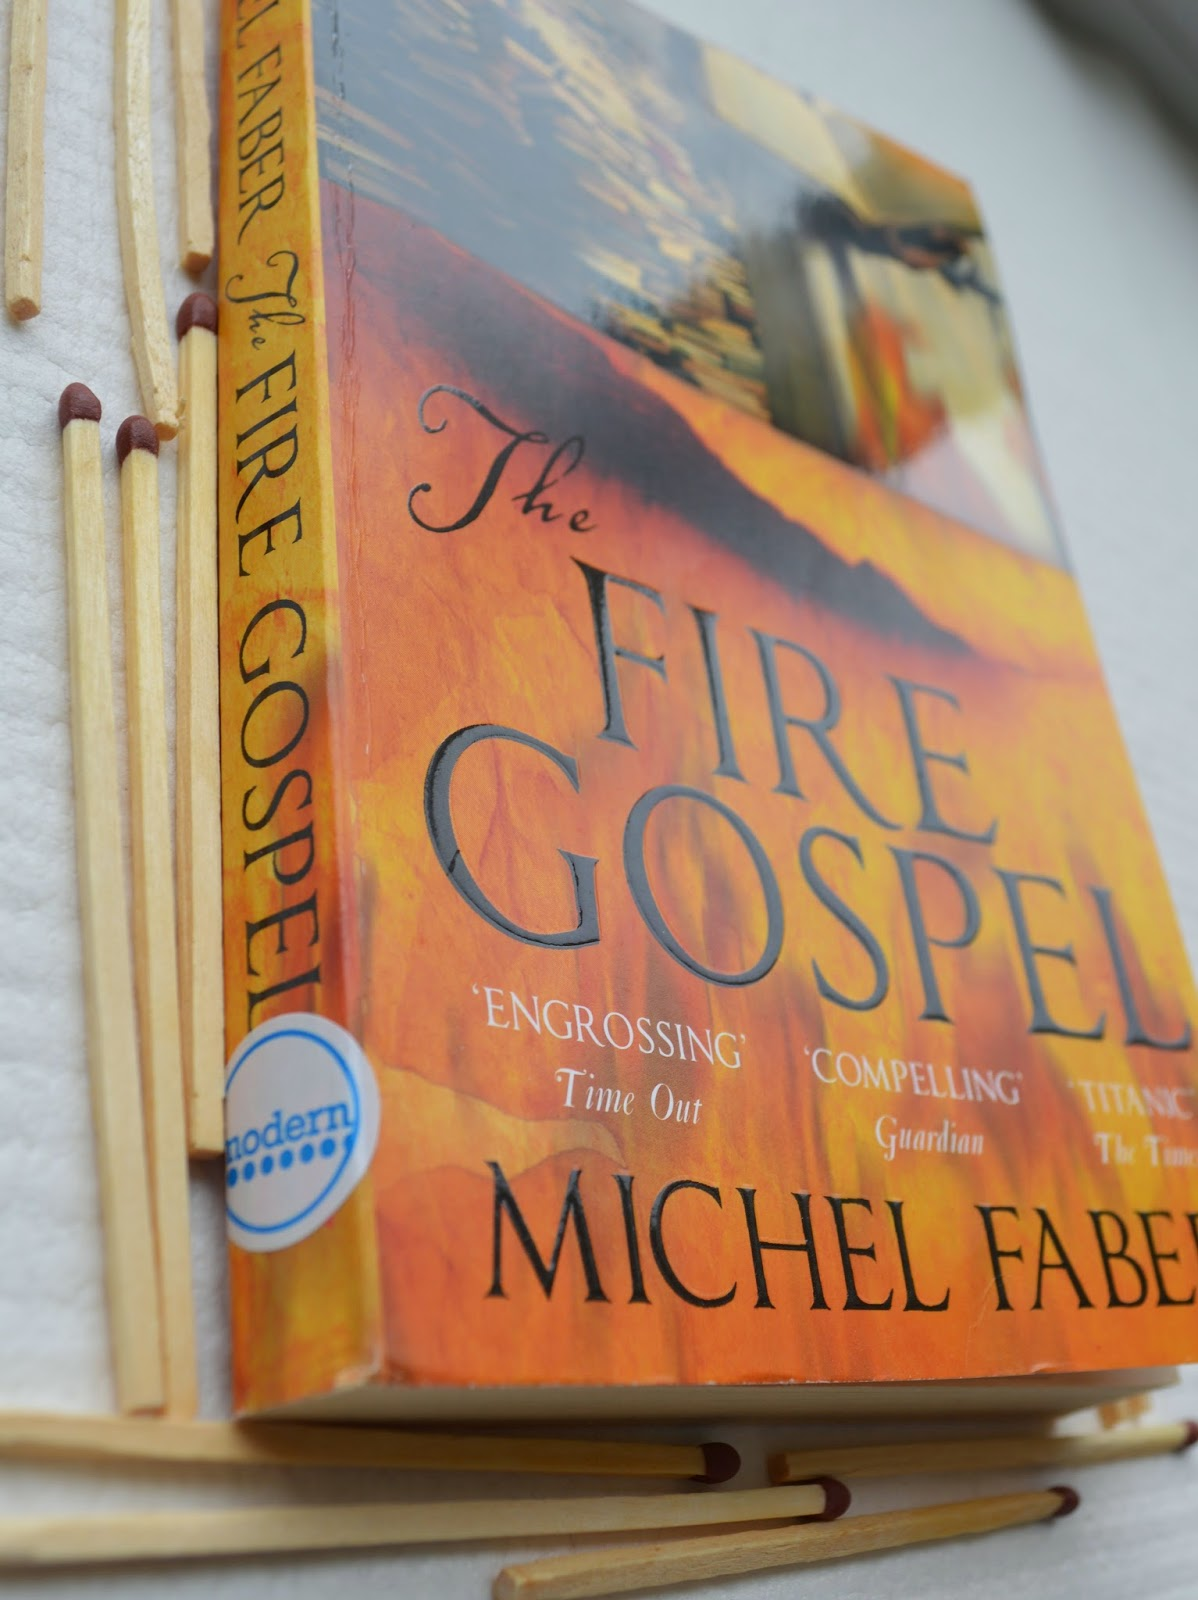 Promethus, Canongate Myth series, Michel Faber, The Fire Gospel, Christian theology, fifth gospel, fiction, novel, UK edition, book cover, review, opinion